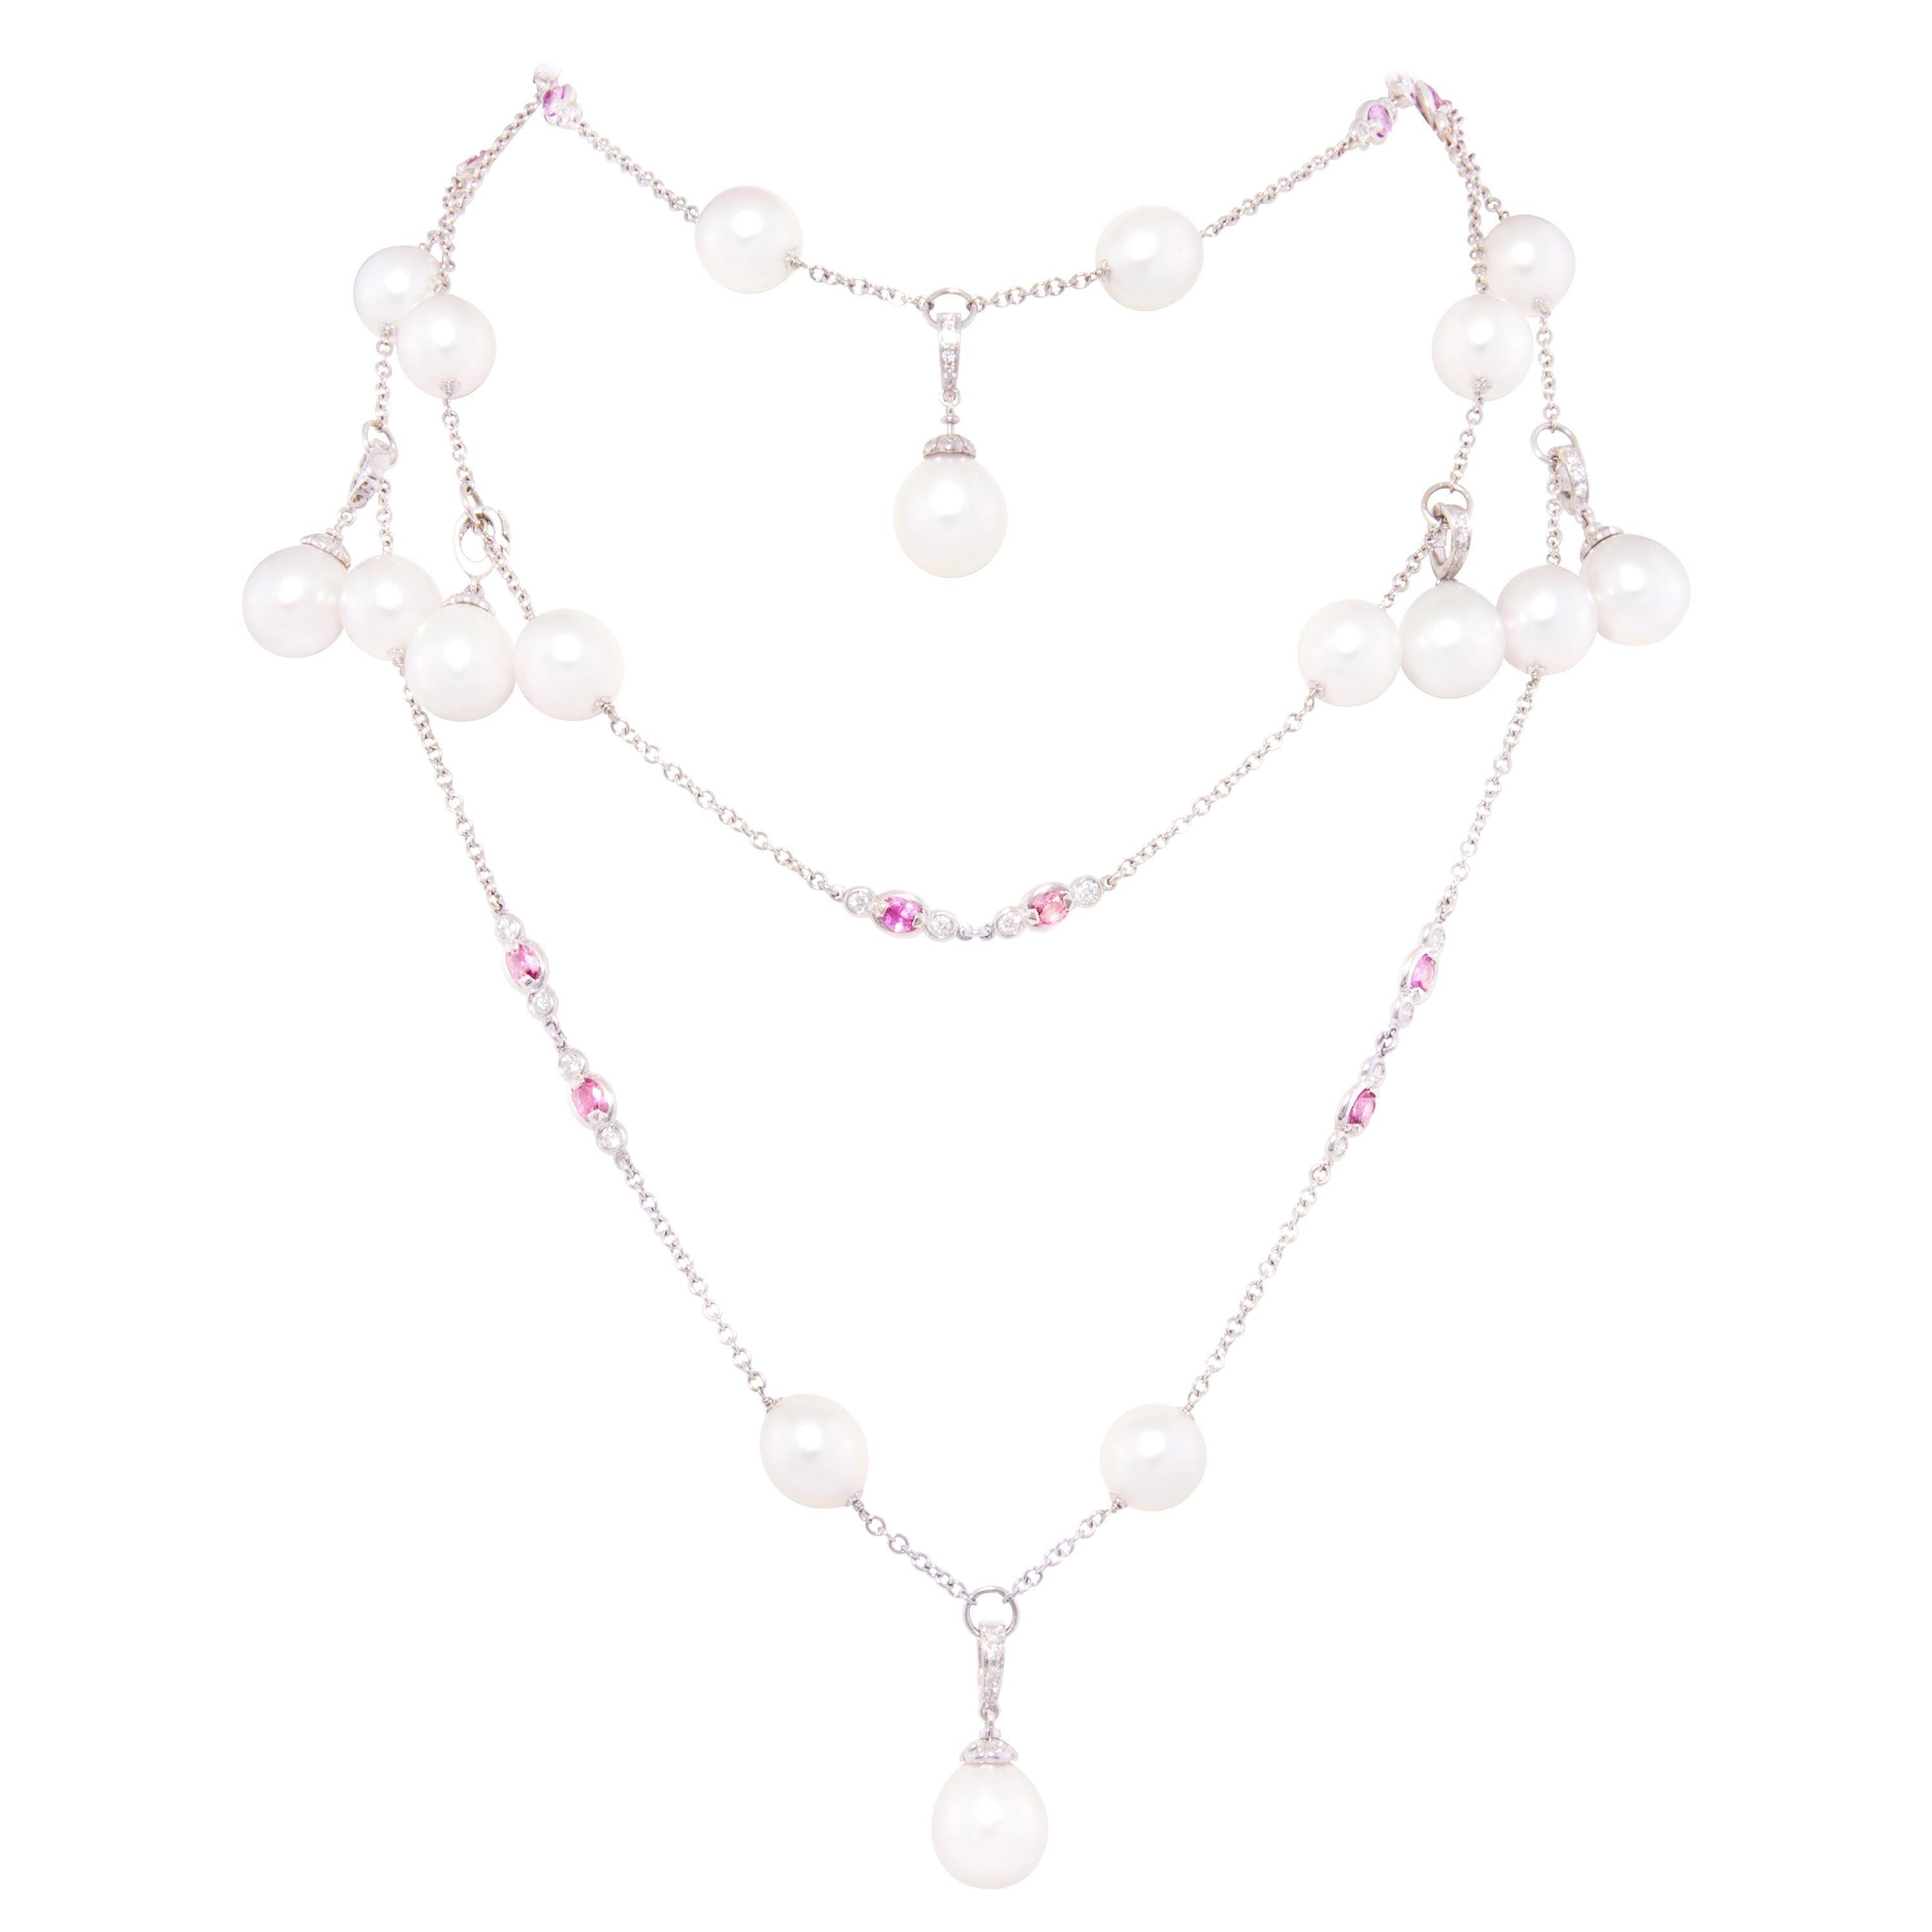 A one-of-a-kind necklace designed by Ella Gafter featuring 27 South Sea pearls accented by diamonds and pink sapphires.